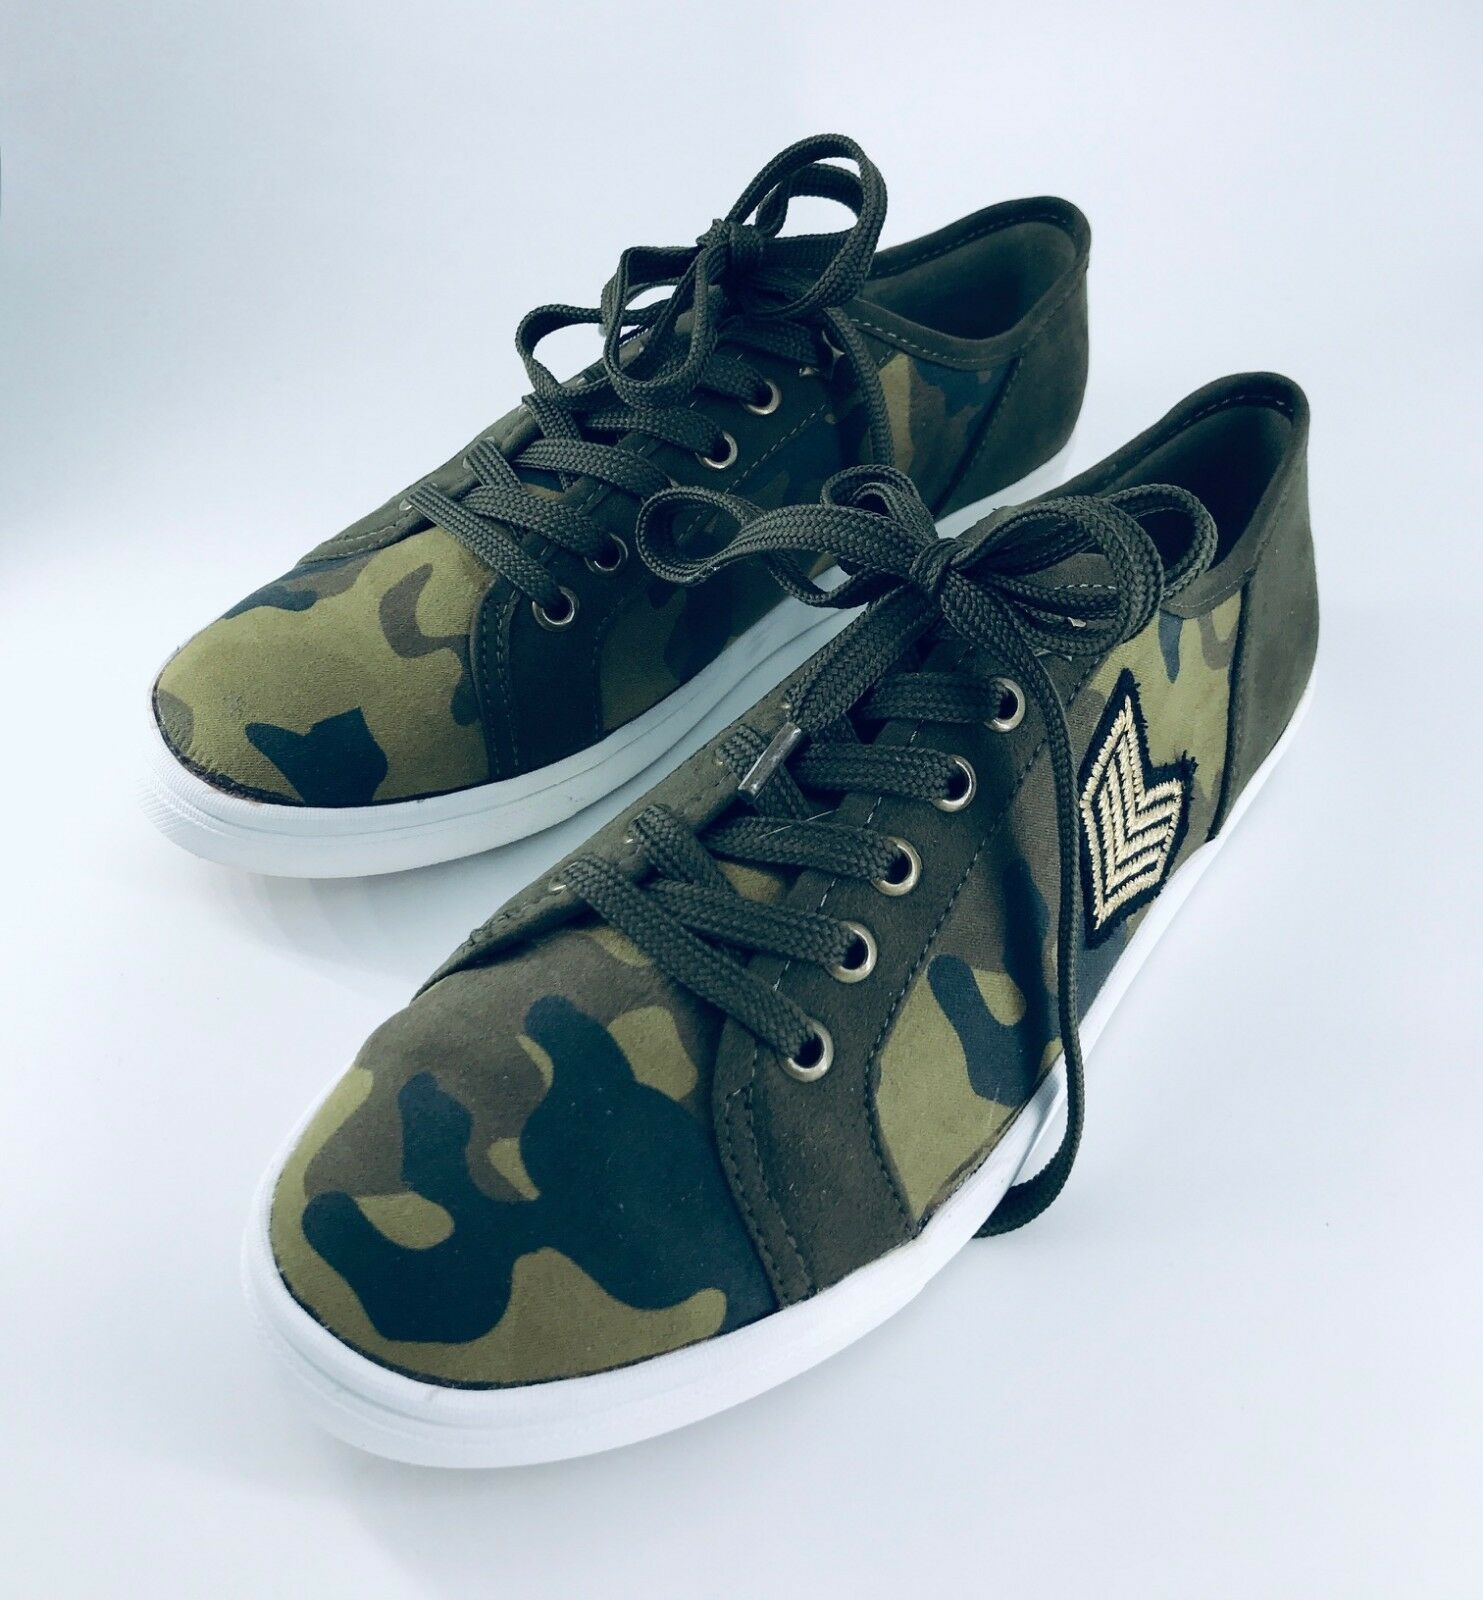 NEW American Rag Green Camo Women's Sneakers Shoes Size 8M NEW IN BOX